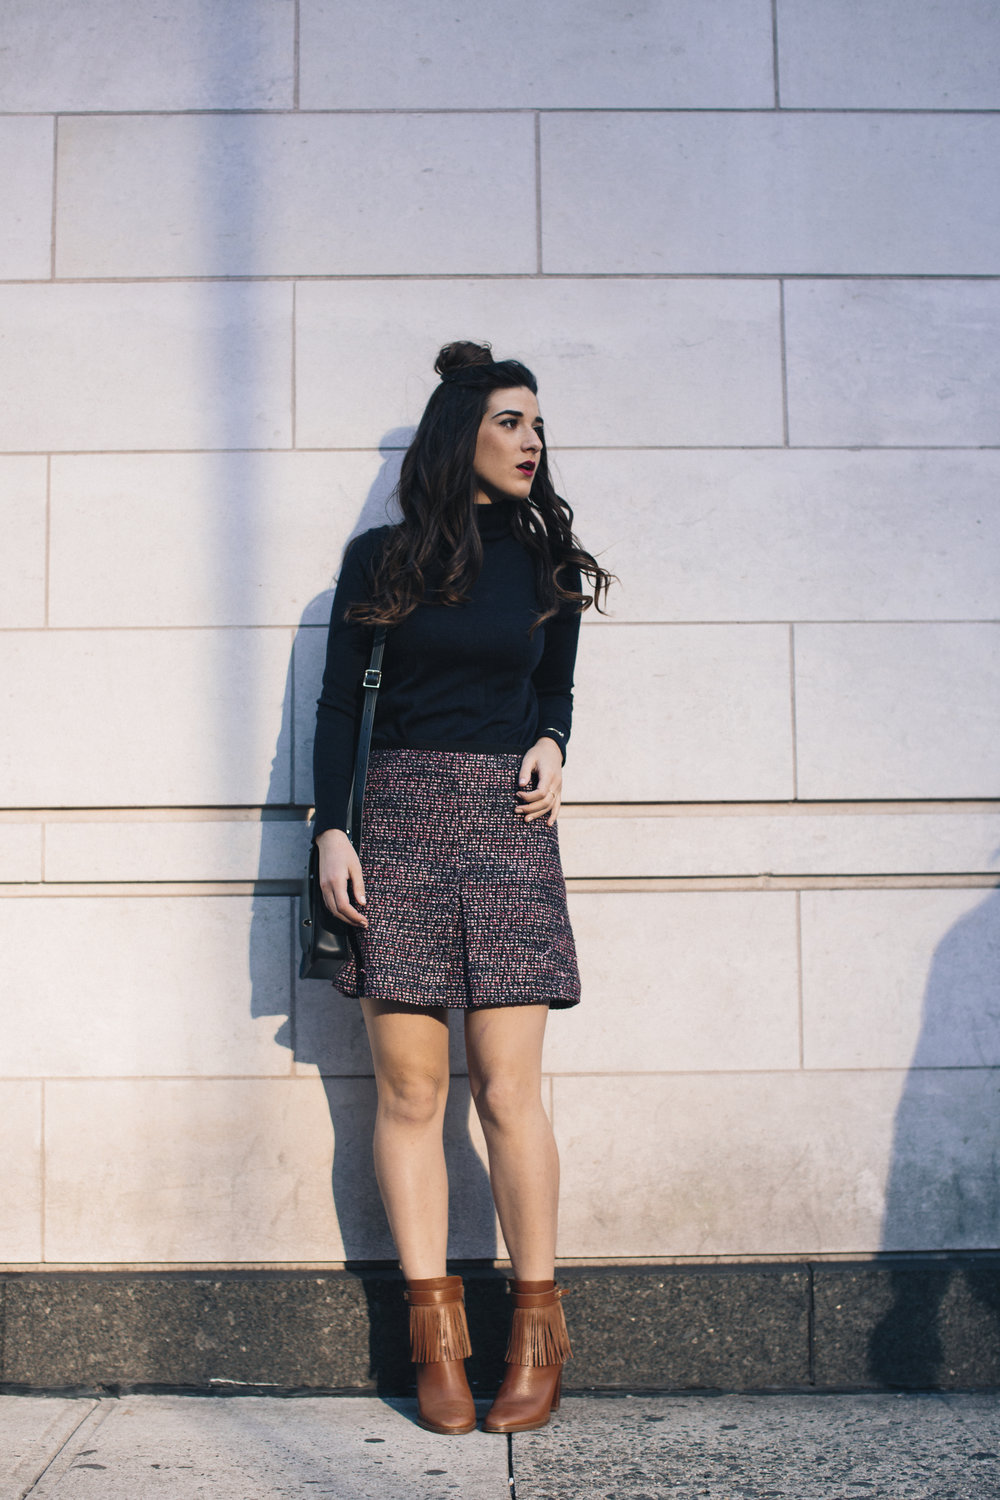 Navy Turtleneck Tweed Skirt My 10 Best Blogging Moments Louboutins & Love Fashion Blog Esther Santer NYC Street Style Blogger Outfit OOTD Trendy Cambridge Satchel Topknot Bag Hair Bun Women Girl Winter Shop Beauty Tan Fringe Shoes Ivanka Trump Booties.jpg